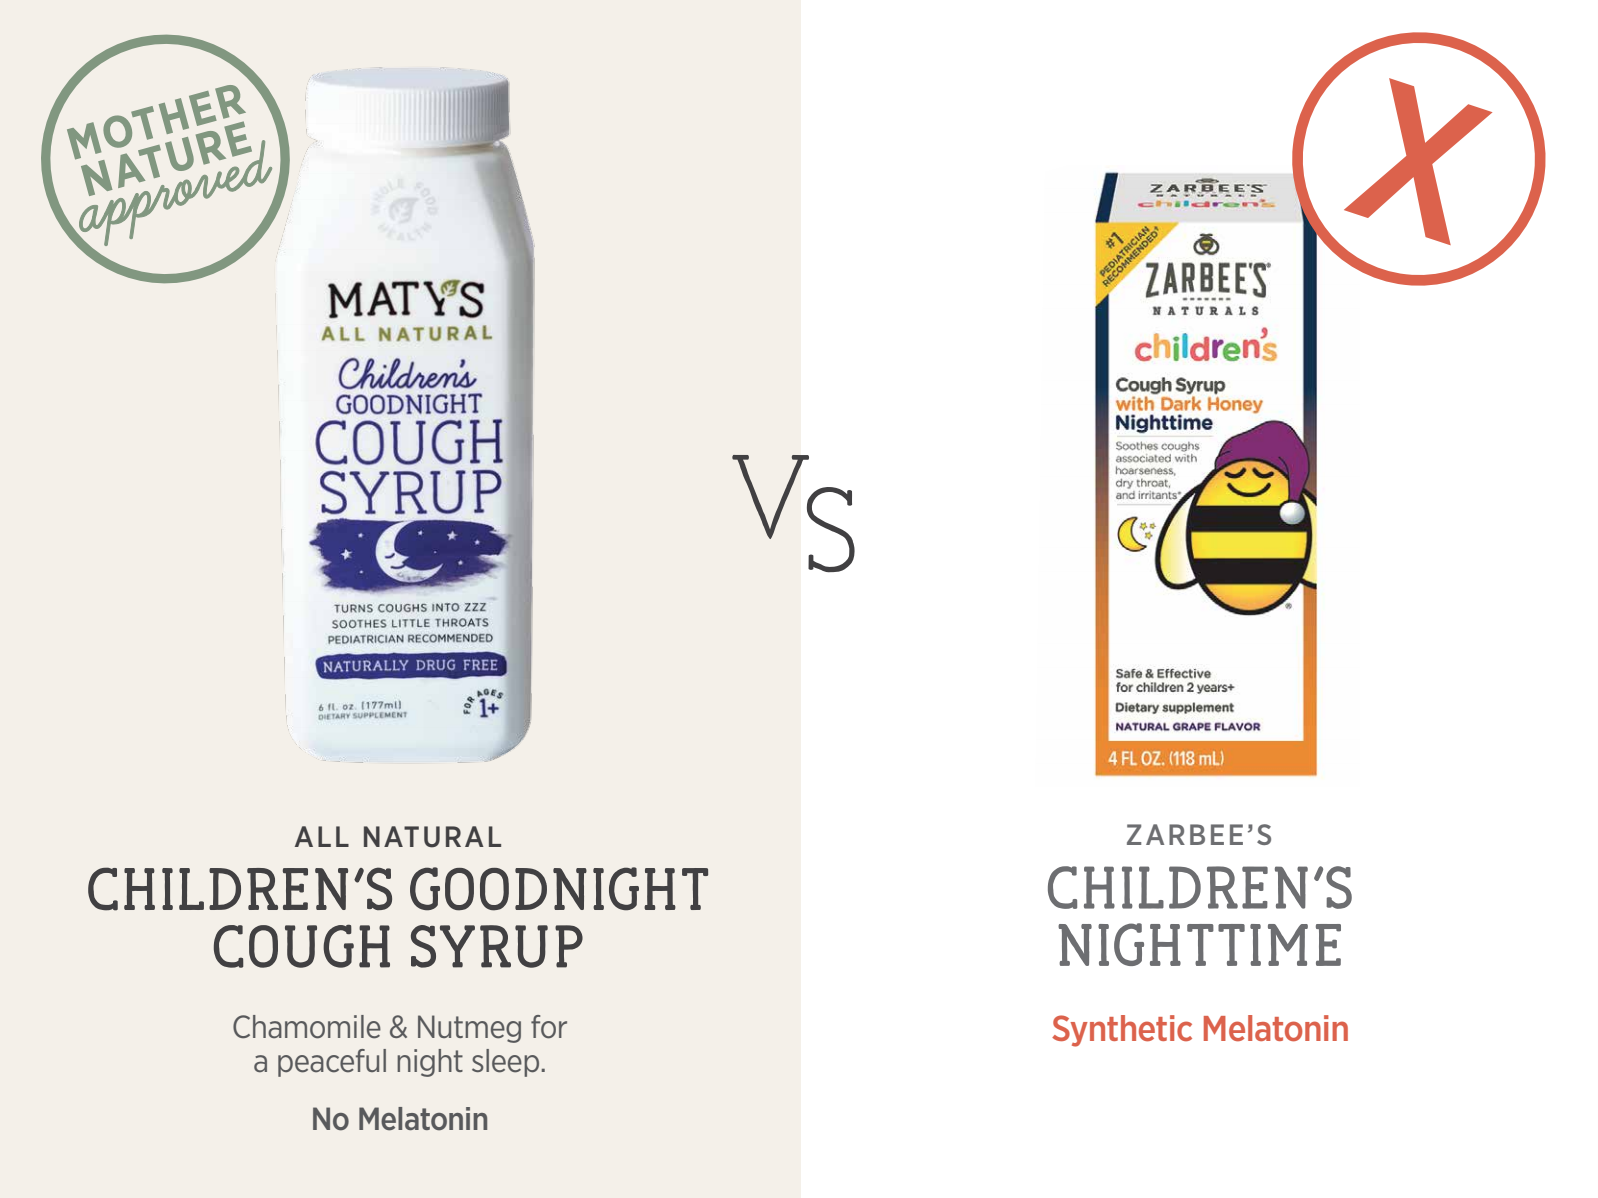 Maty's Goodnight Cough Syrup Comparison